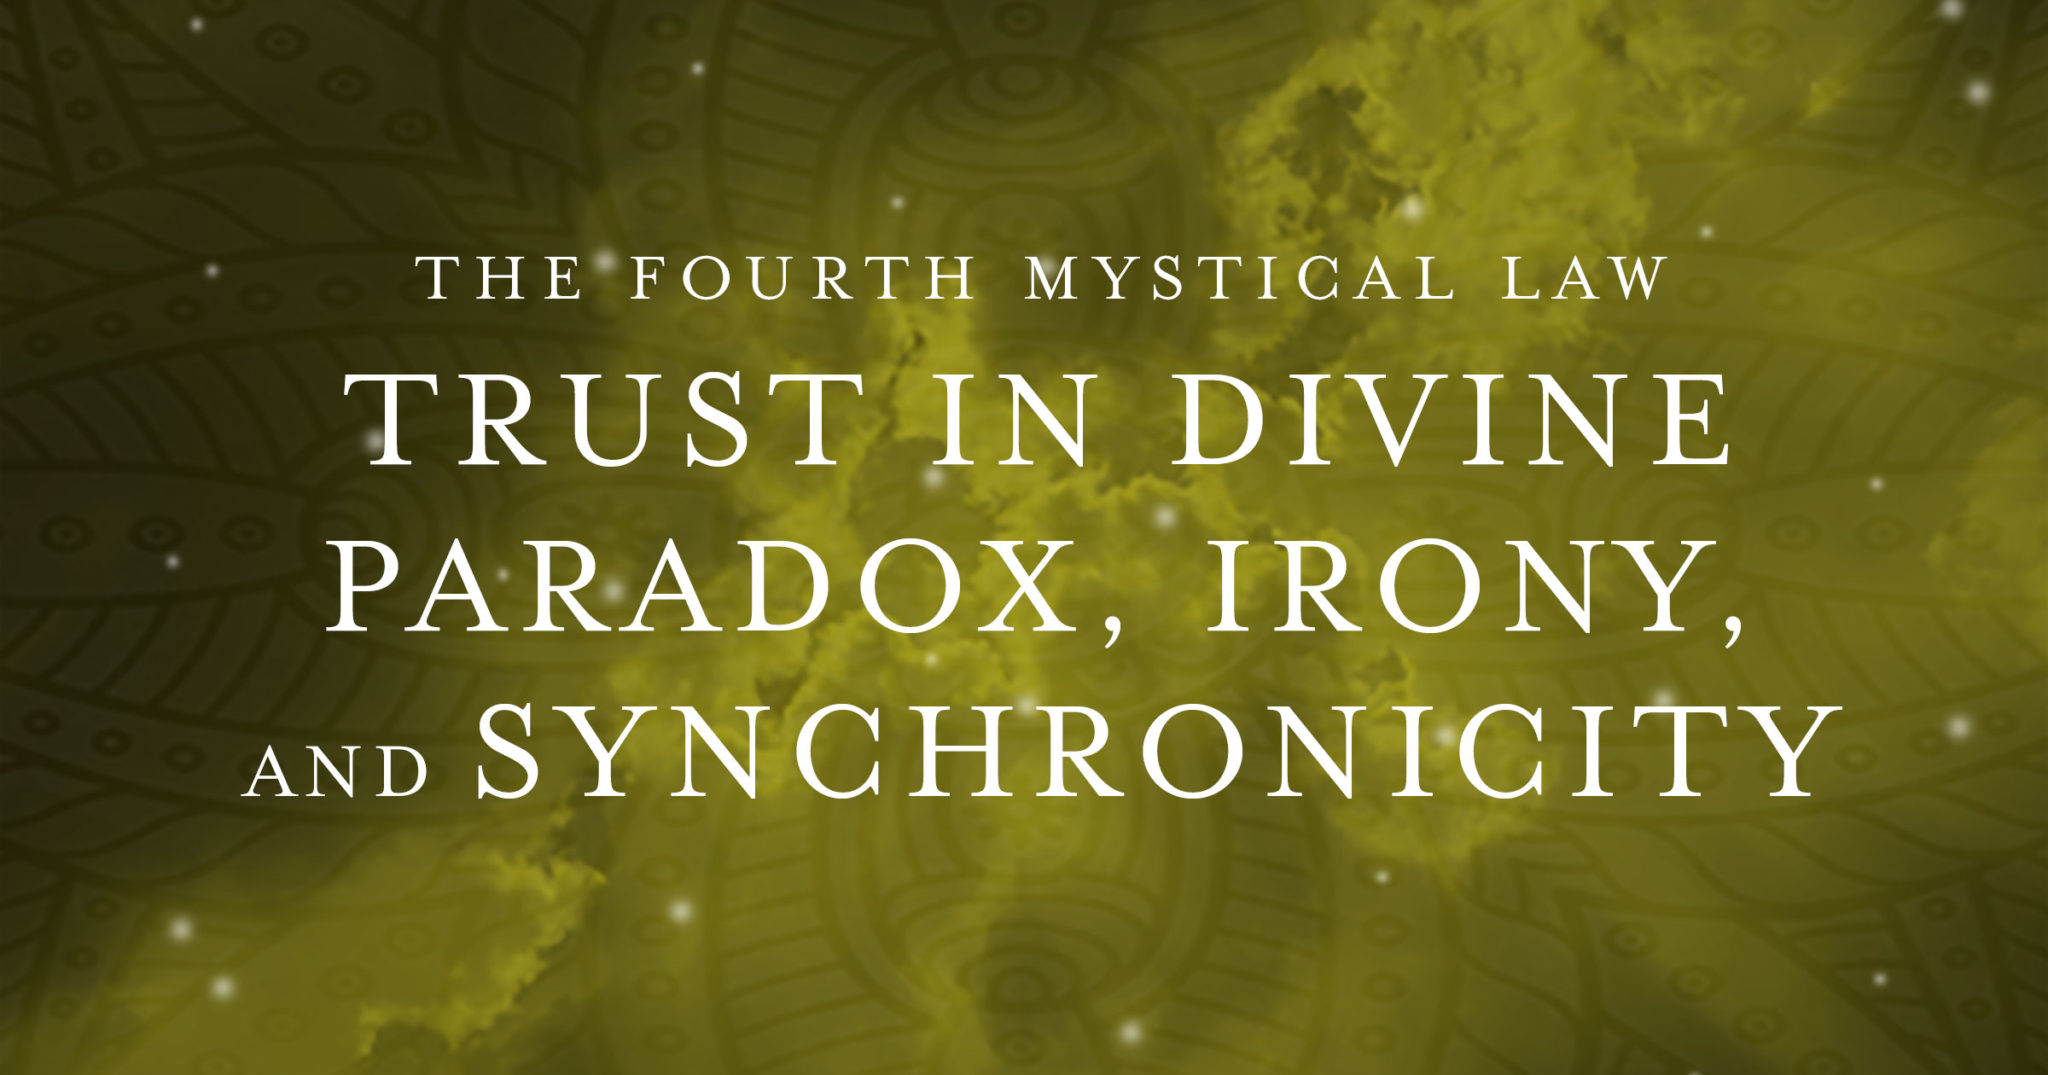 The Fourth Mystical Law: Trust in Divine Paradox, Irony, and Synchronicity